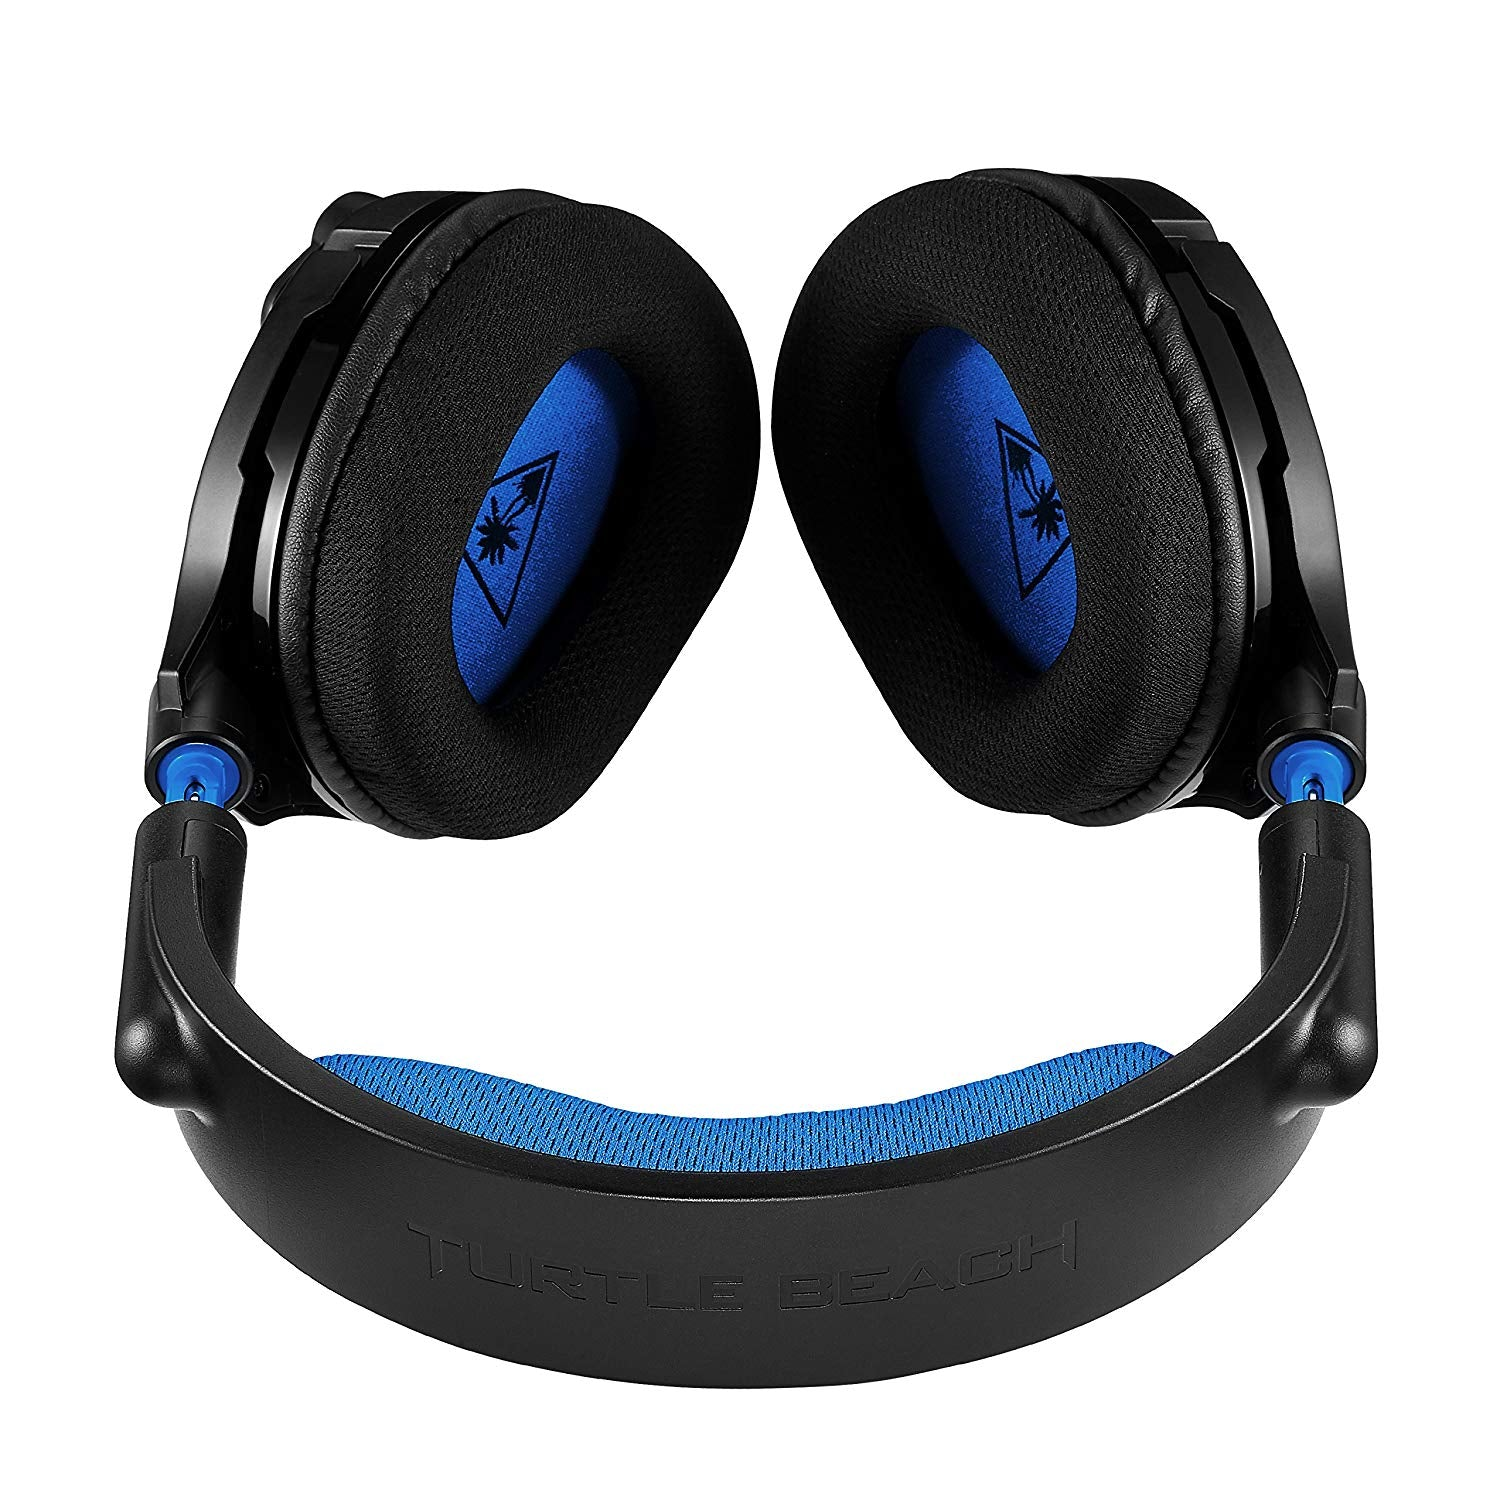 Turtle Beach Stealth 300P Wired Headset